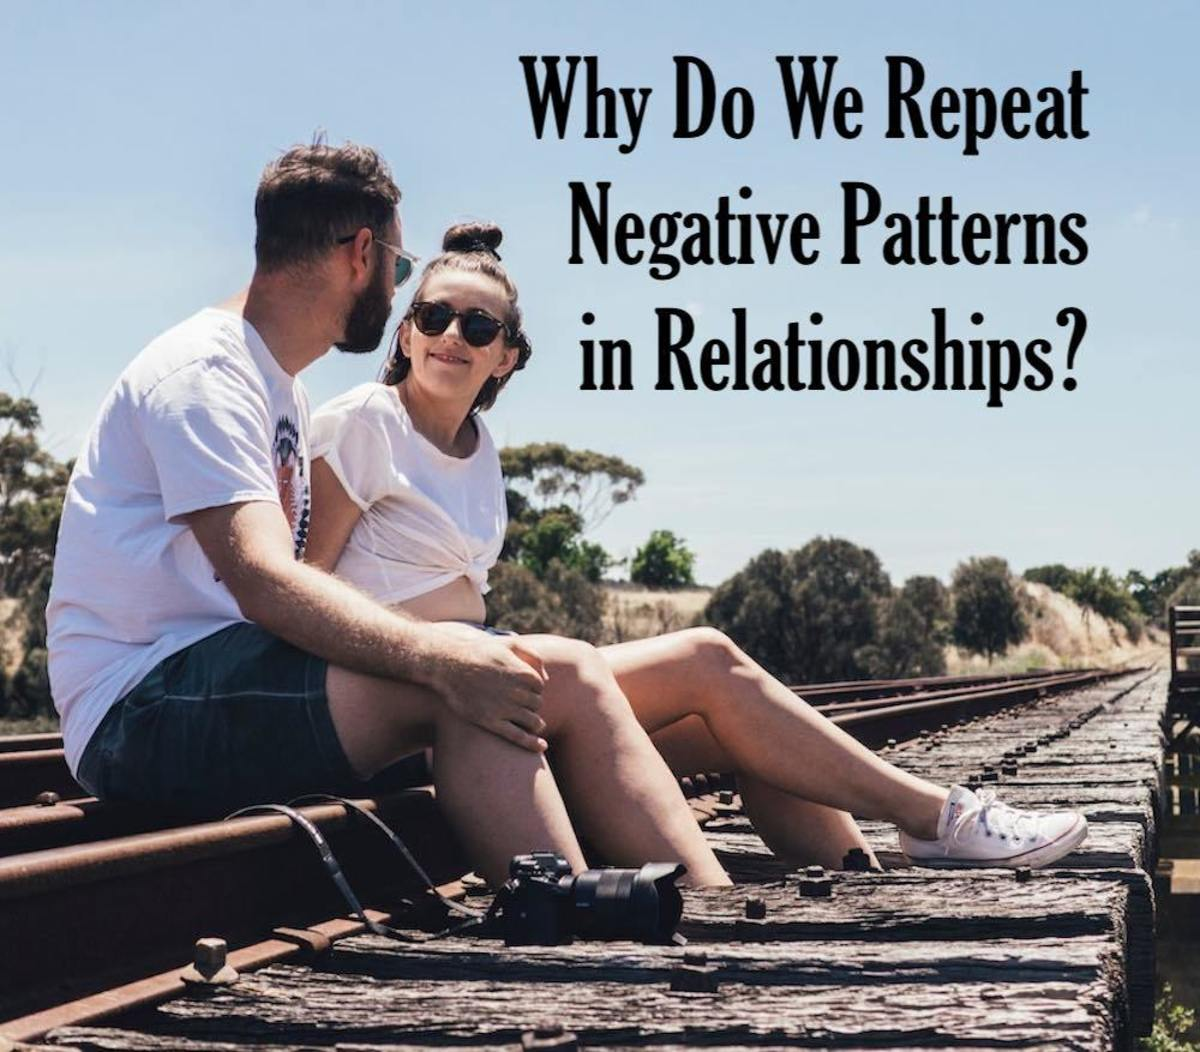 Why Do We Repeat Negative Patterns in Relationships?